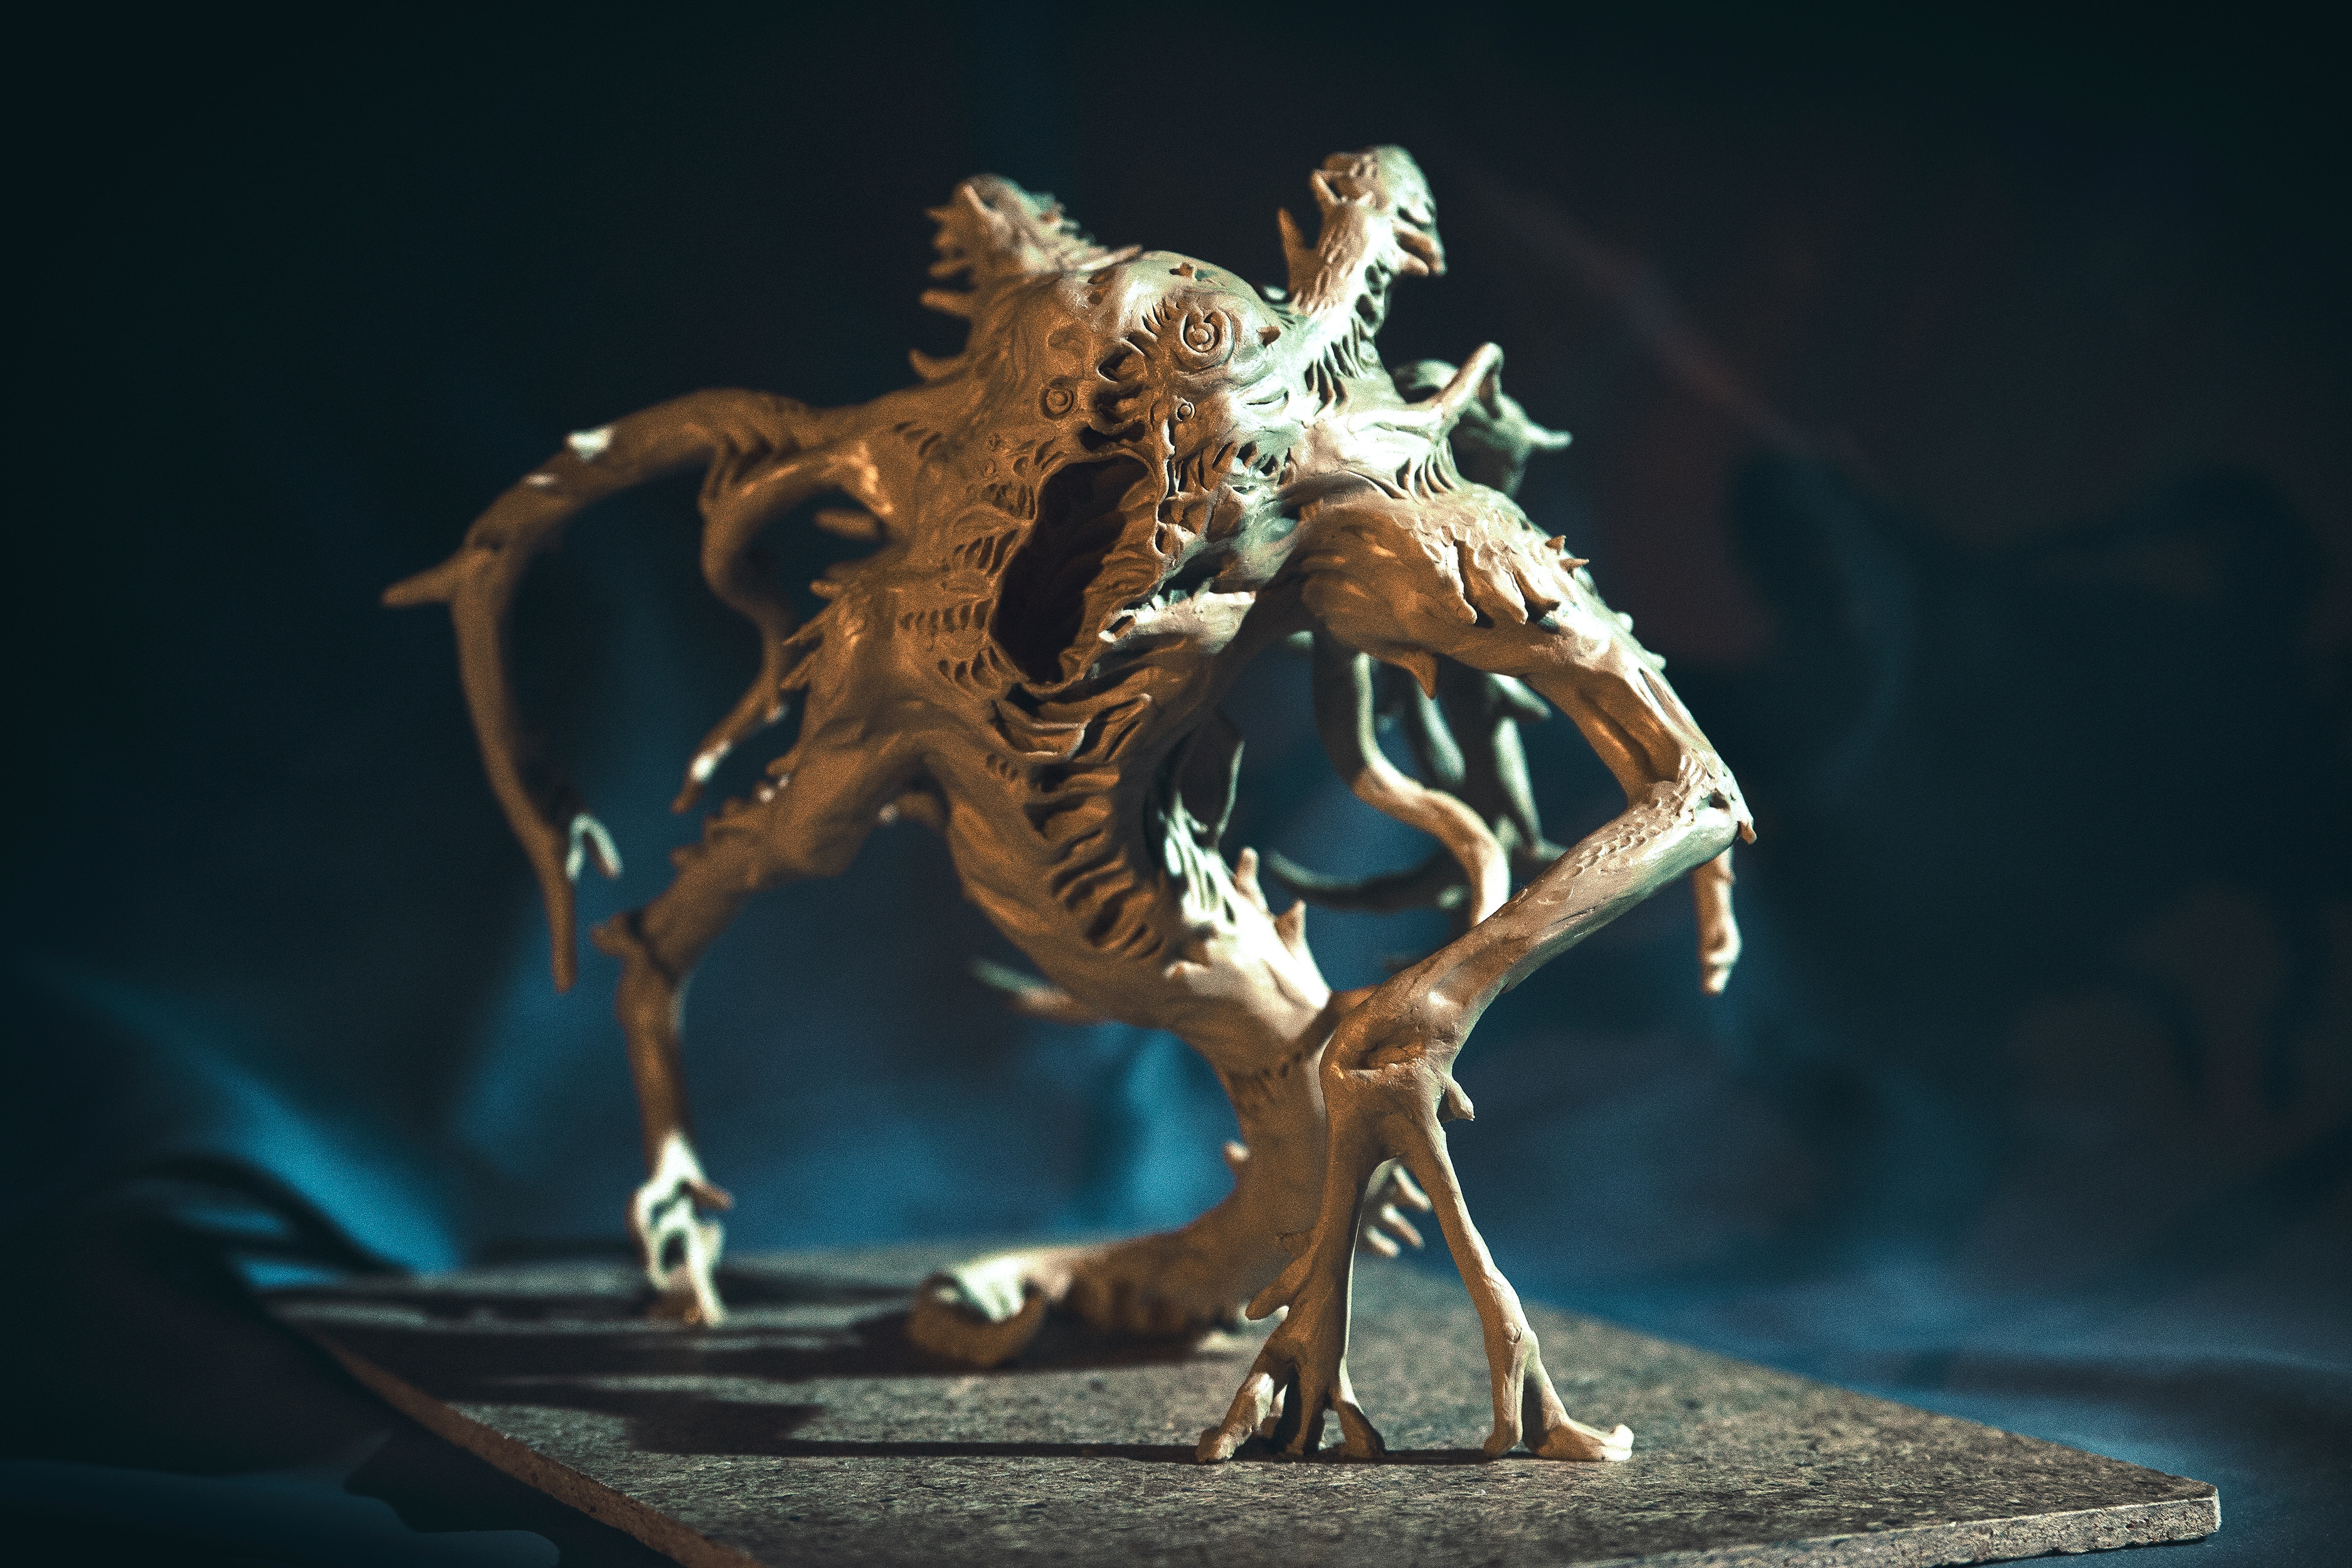 """sinkingcitysculpture 2 - Exclusive: The Sinking City Team Uses These Unsettling Sculptures to """"Get in the Mood"""""""